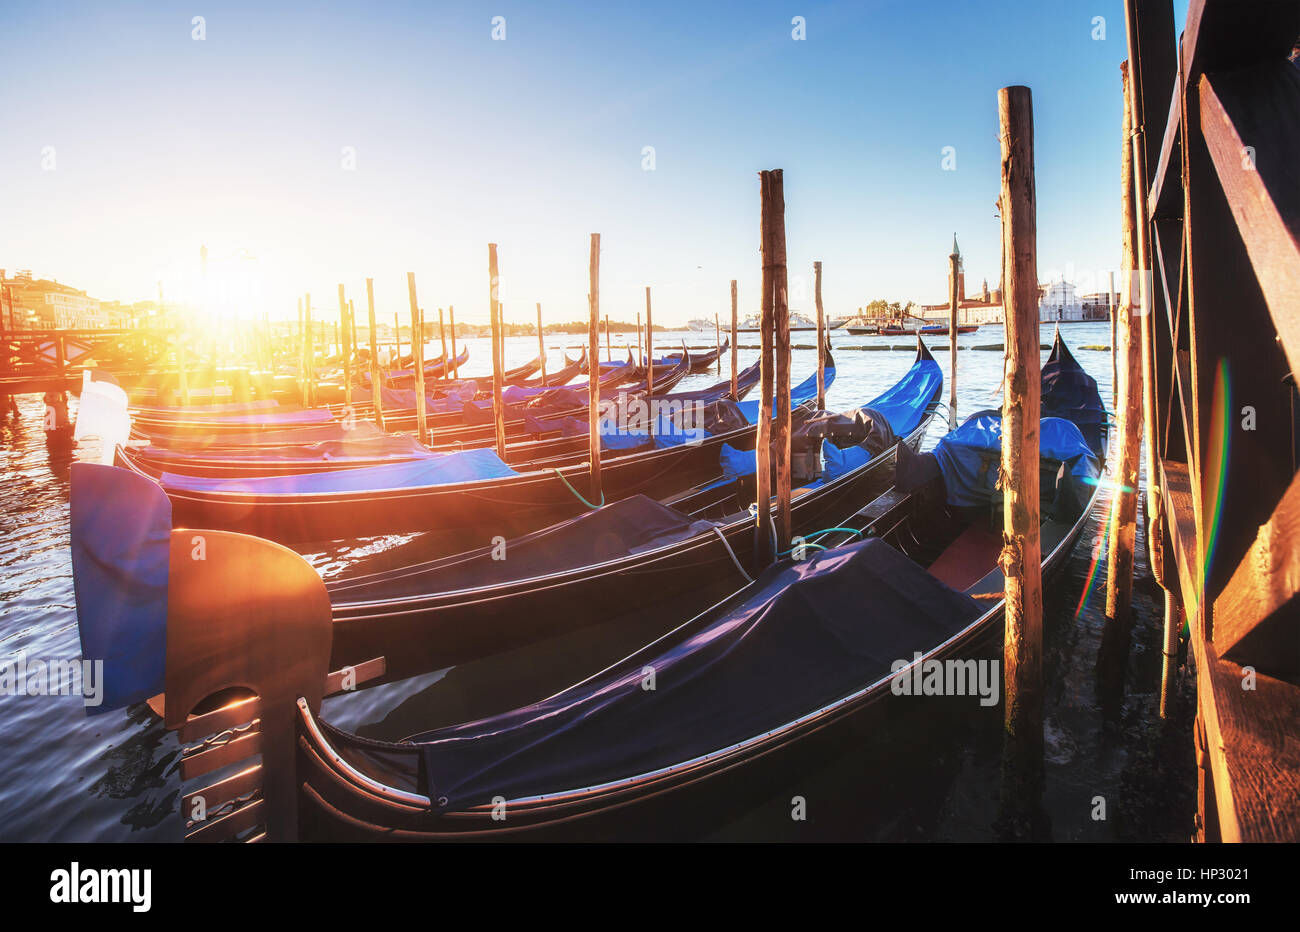 City landscape. Fantastic views of the gondola at sunset, moored - Stock Image